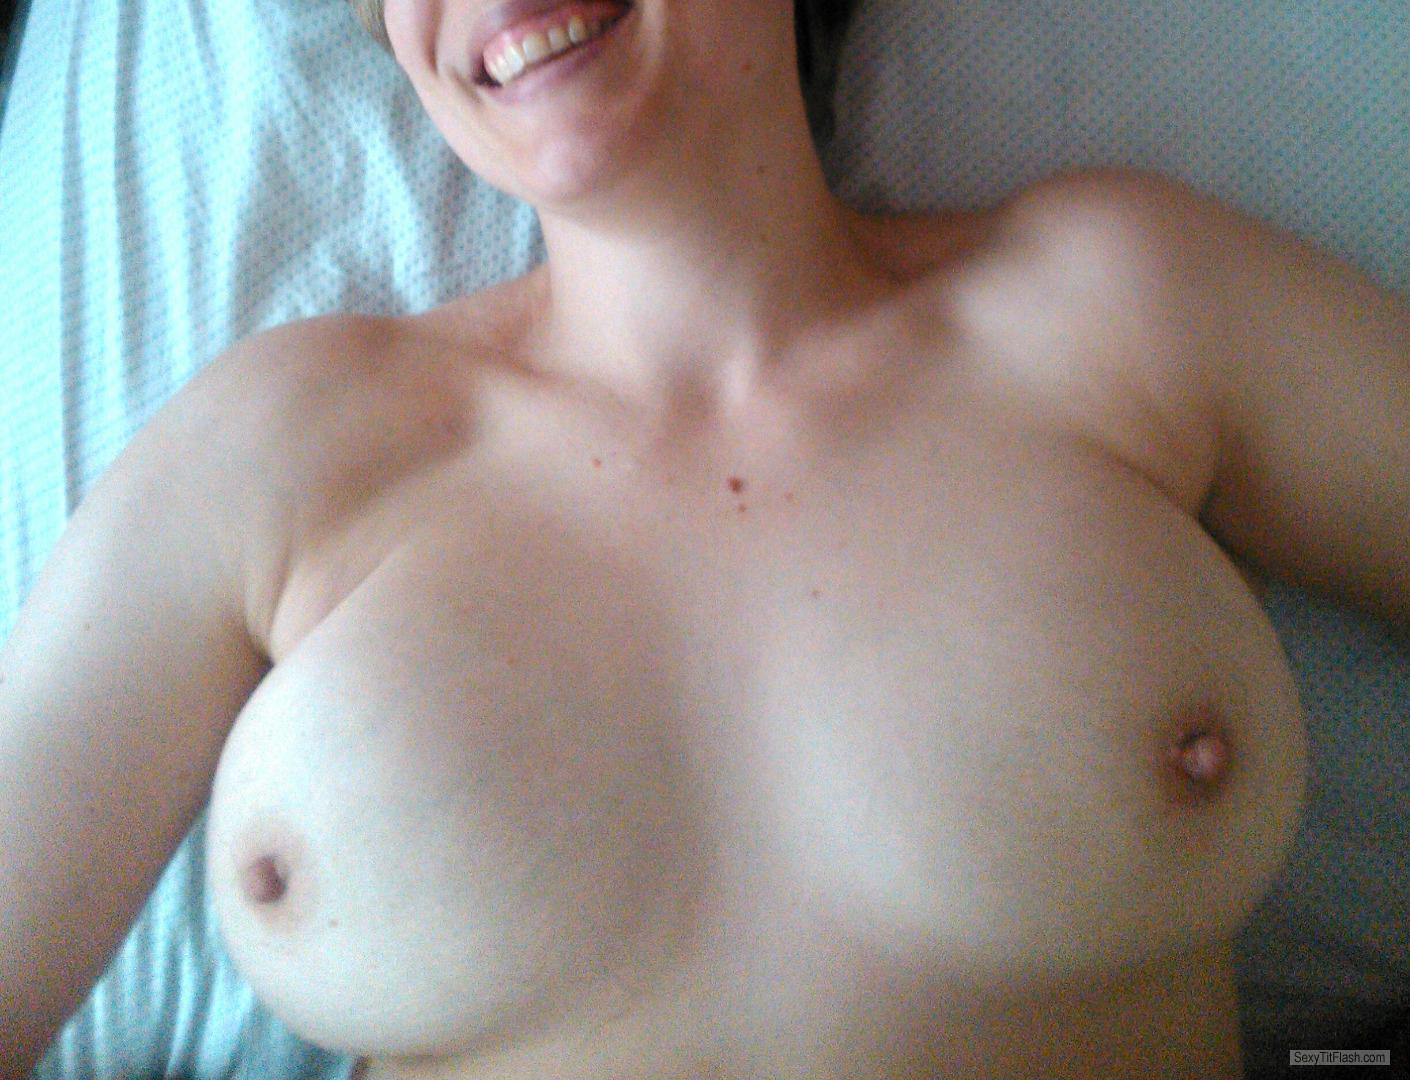 Tit Flash: Wife's Big Tits - Lonwife from United Kingdom